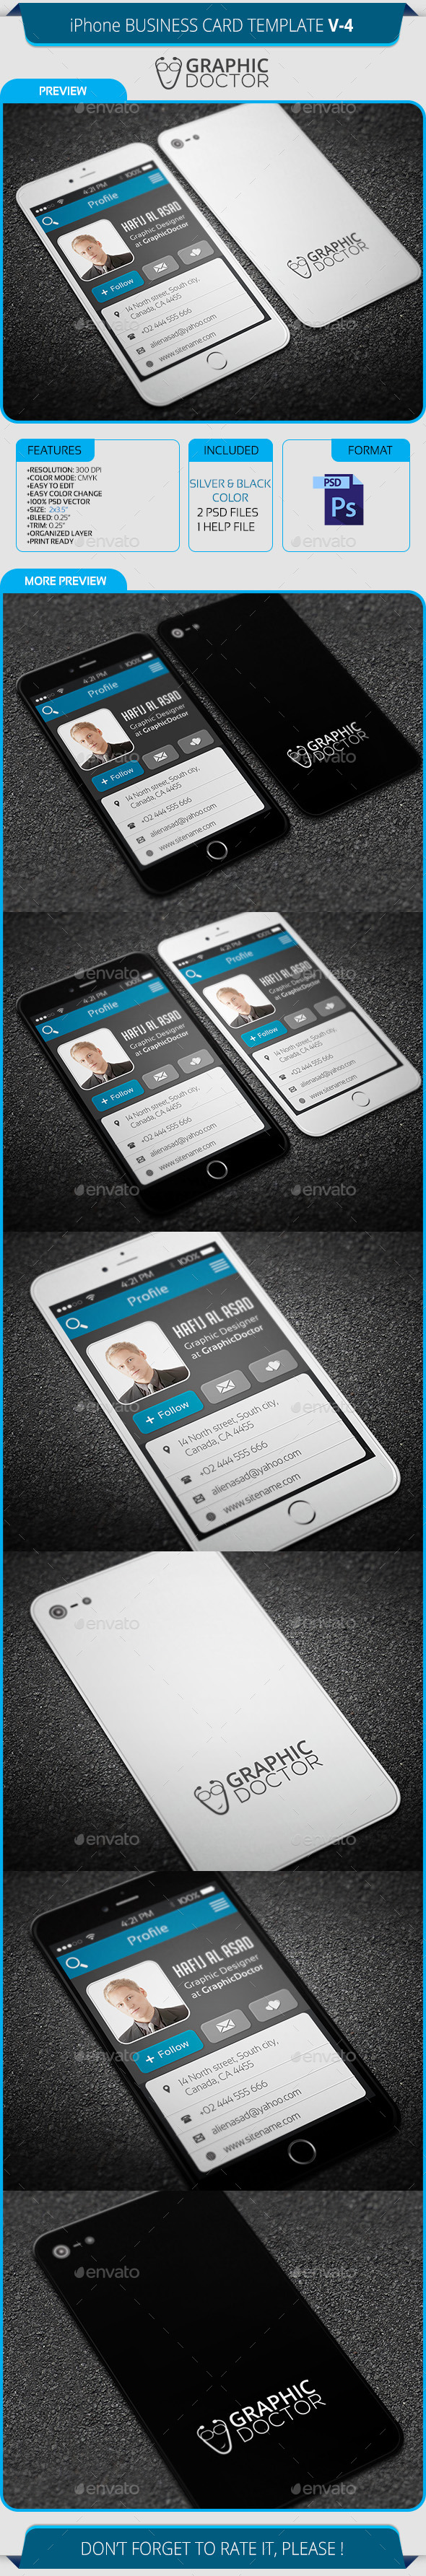 Iphone business card template v 4 by graphicdoctor graphicriver iphone business card template v 4 real objects business cards flashek